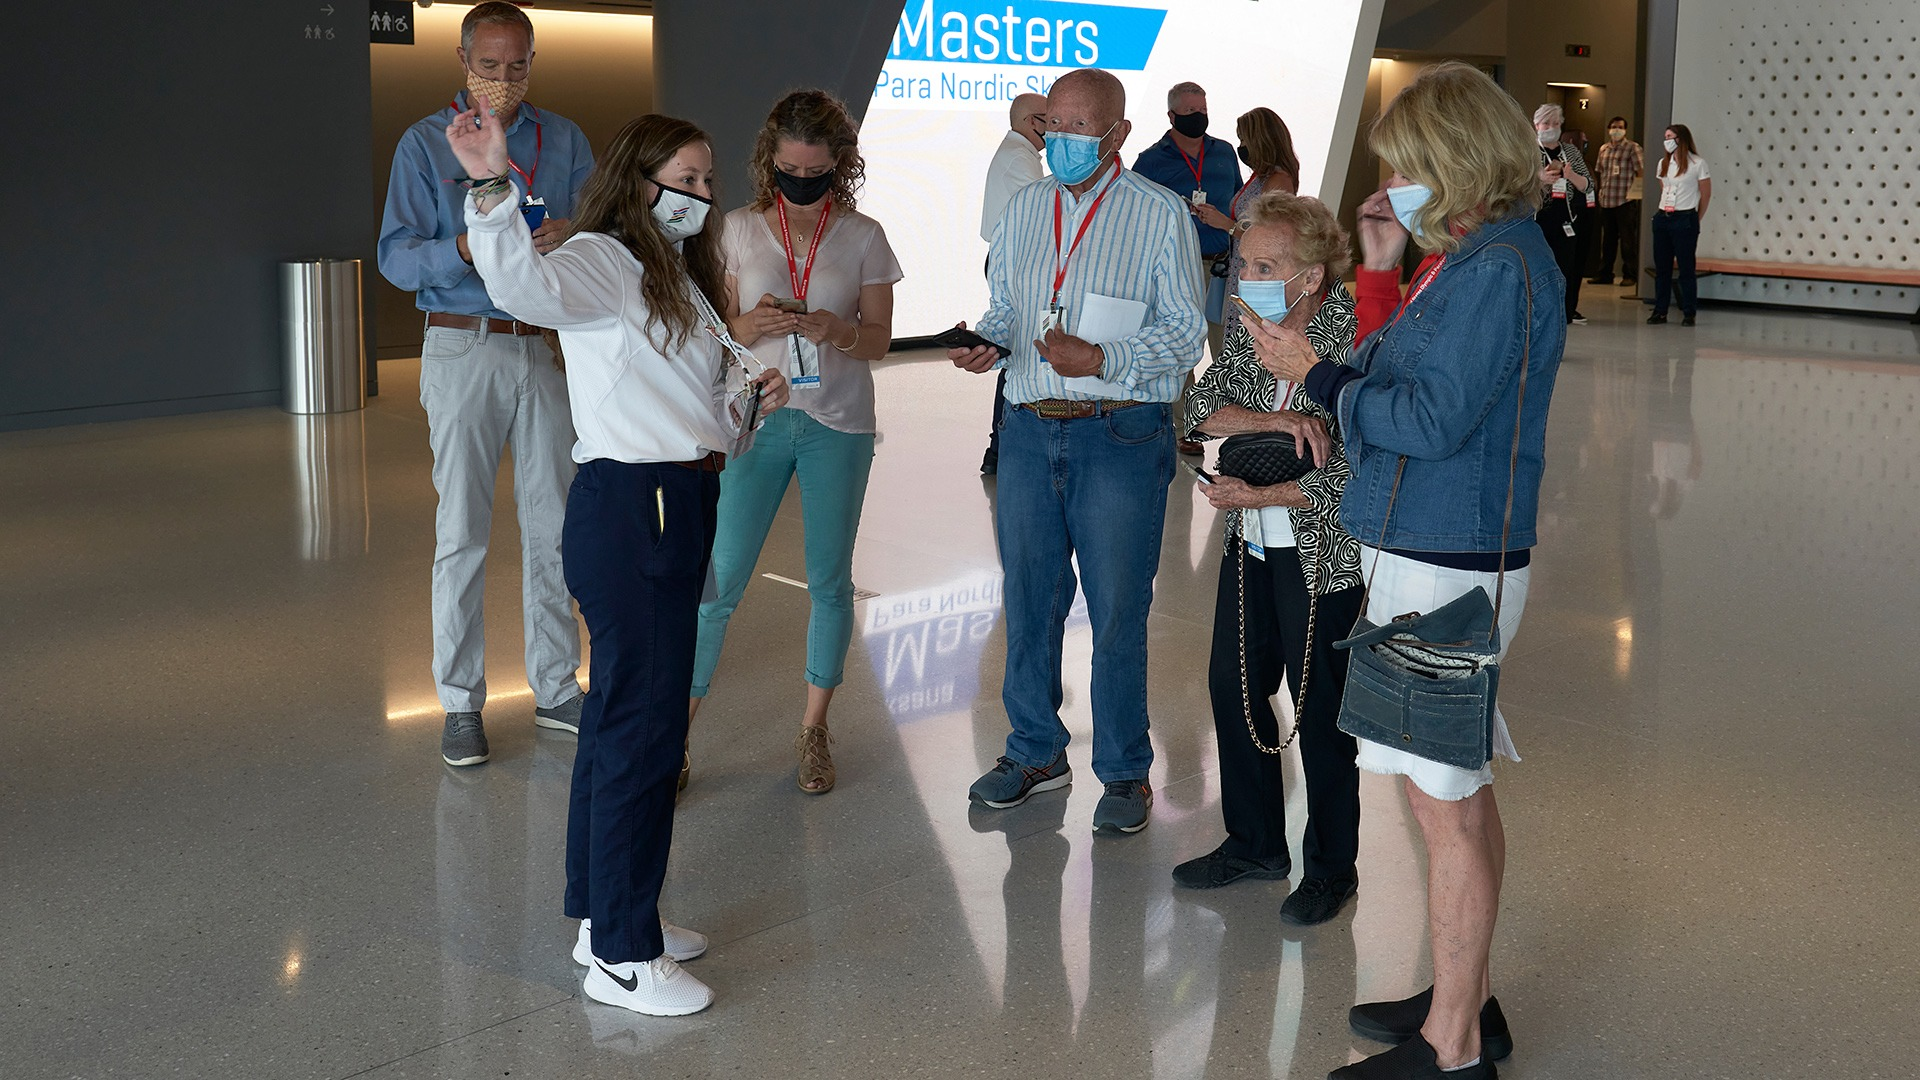 A Museum Team Member welcomes guests and points out some features in the lobby